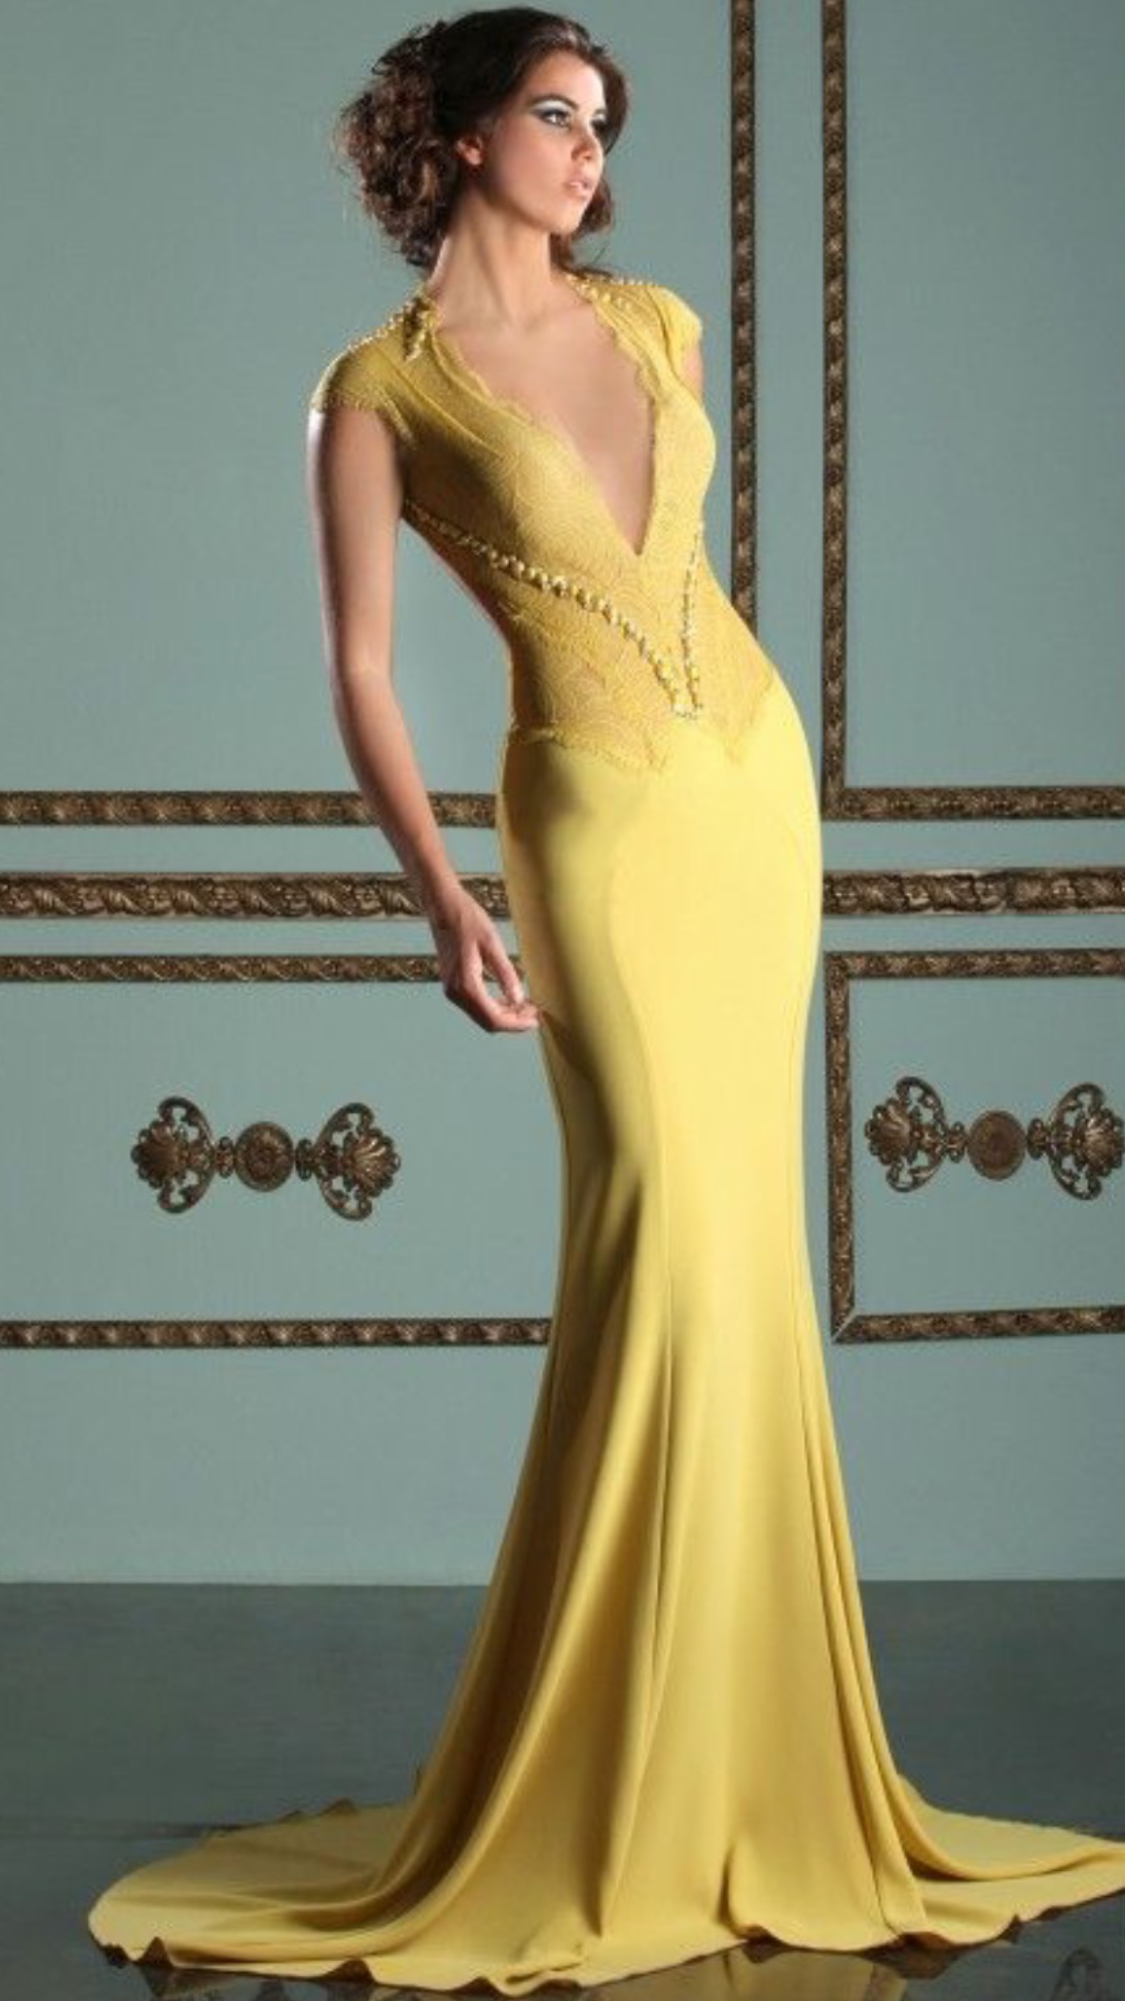 Pin by lucille nuanes on fashionyellows pinterest fashion